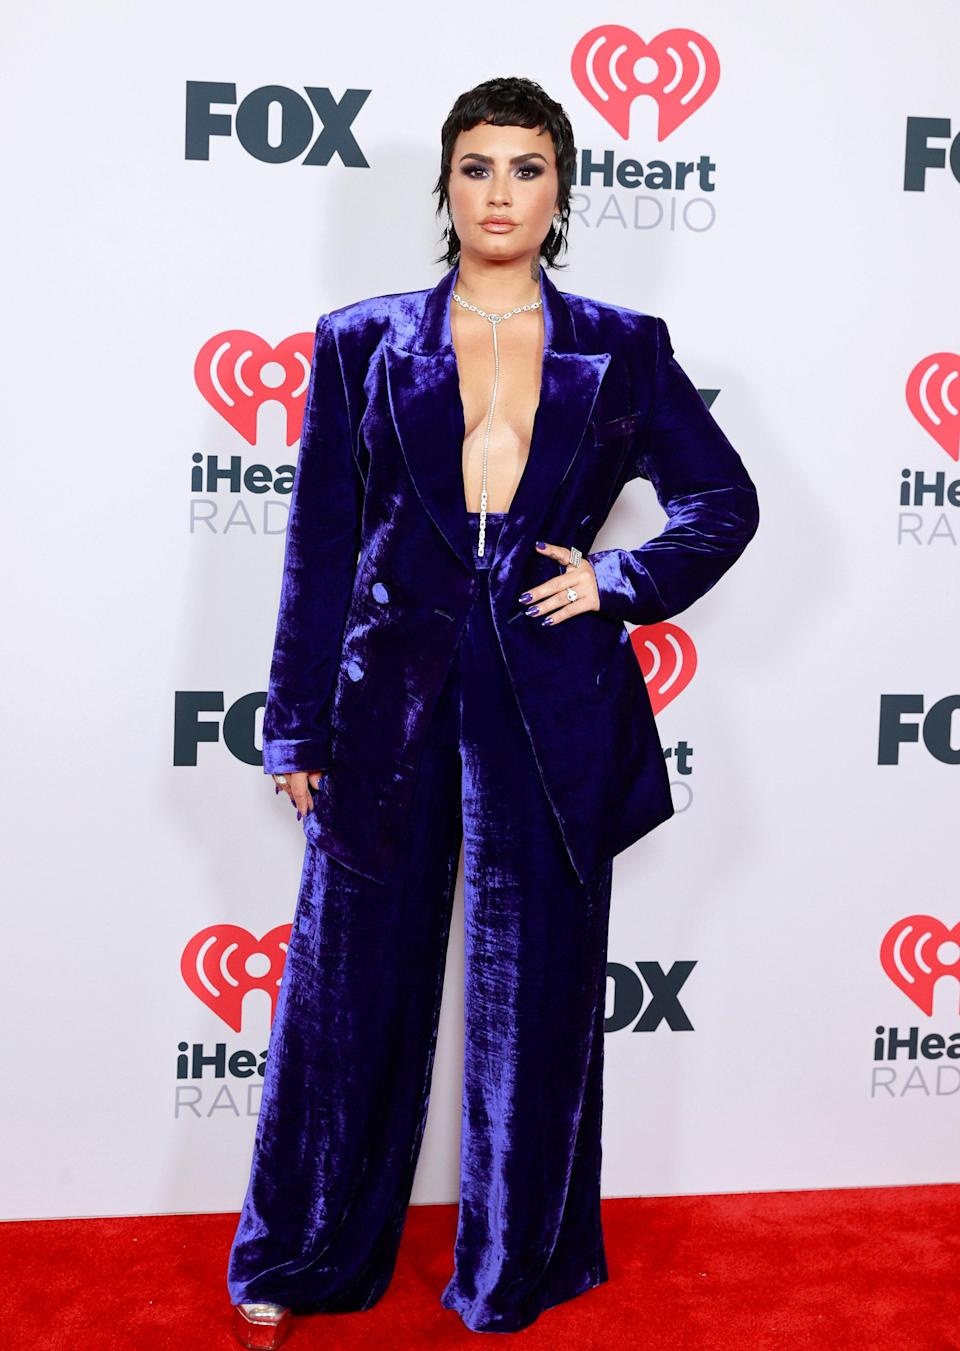 We can't get over how good Demi Lovato looks with their new mullet! Styled by Siena Montesano, they looked powerful in a crushed velvet pantsuit by Dundas. Demi kept the violet theme consistent with their intense smokey eye and metallic purple nails. The star ditched wearing a shirt and instead opted for a bare chest adorned with a string of bling.